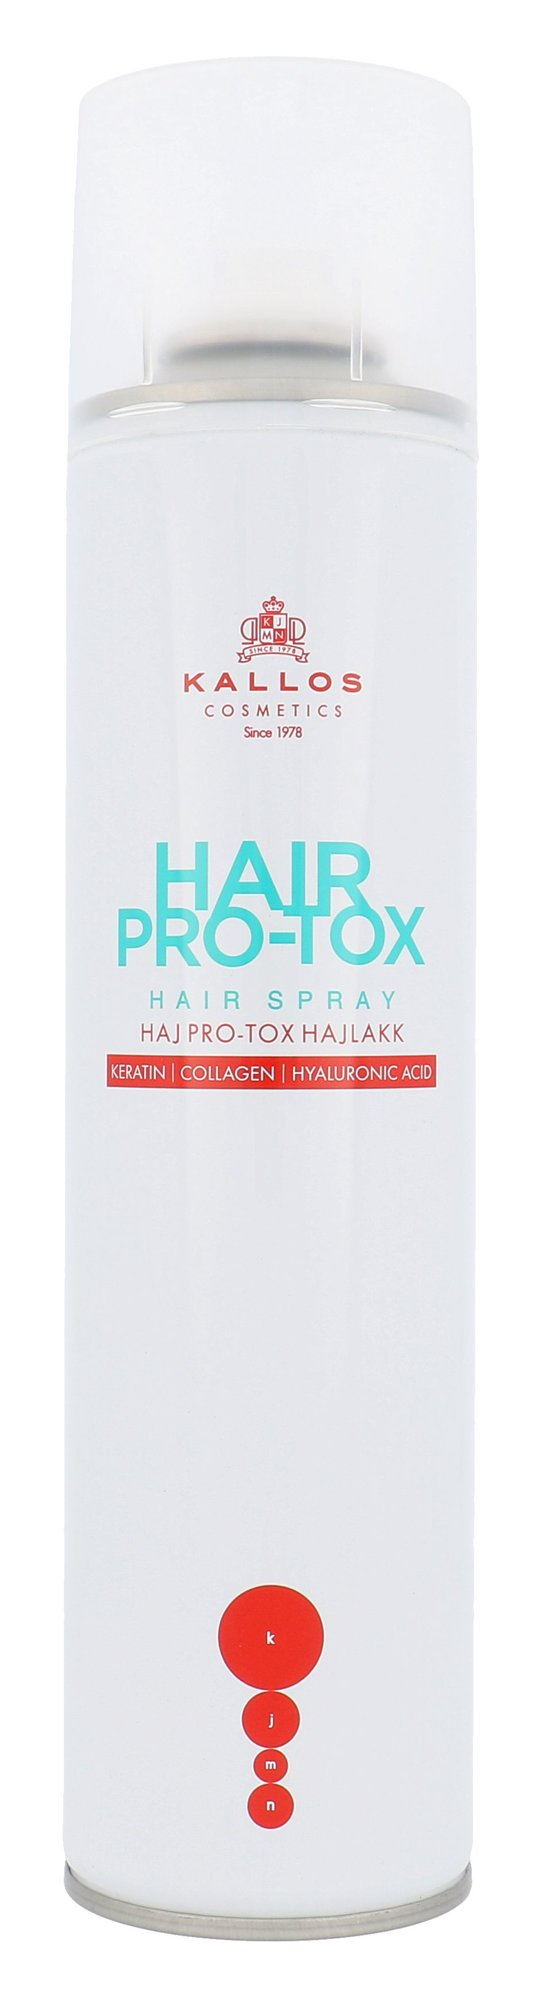 Kallos Cosmetics Hair Pro-Tox Hair Spray 400ml